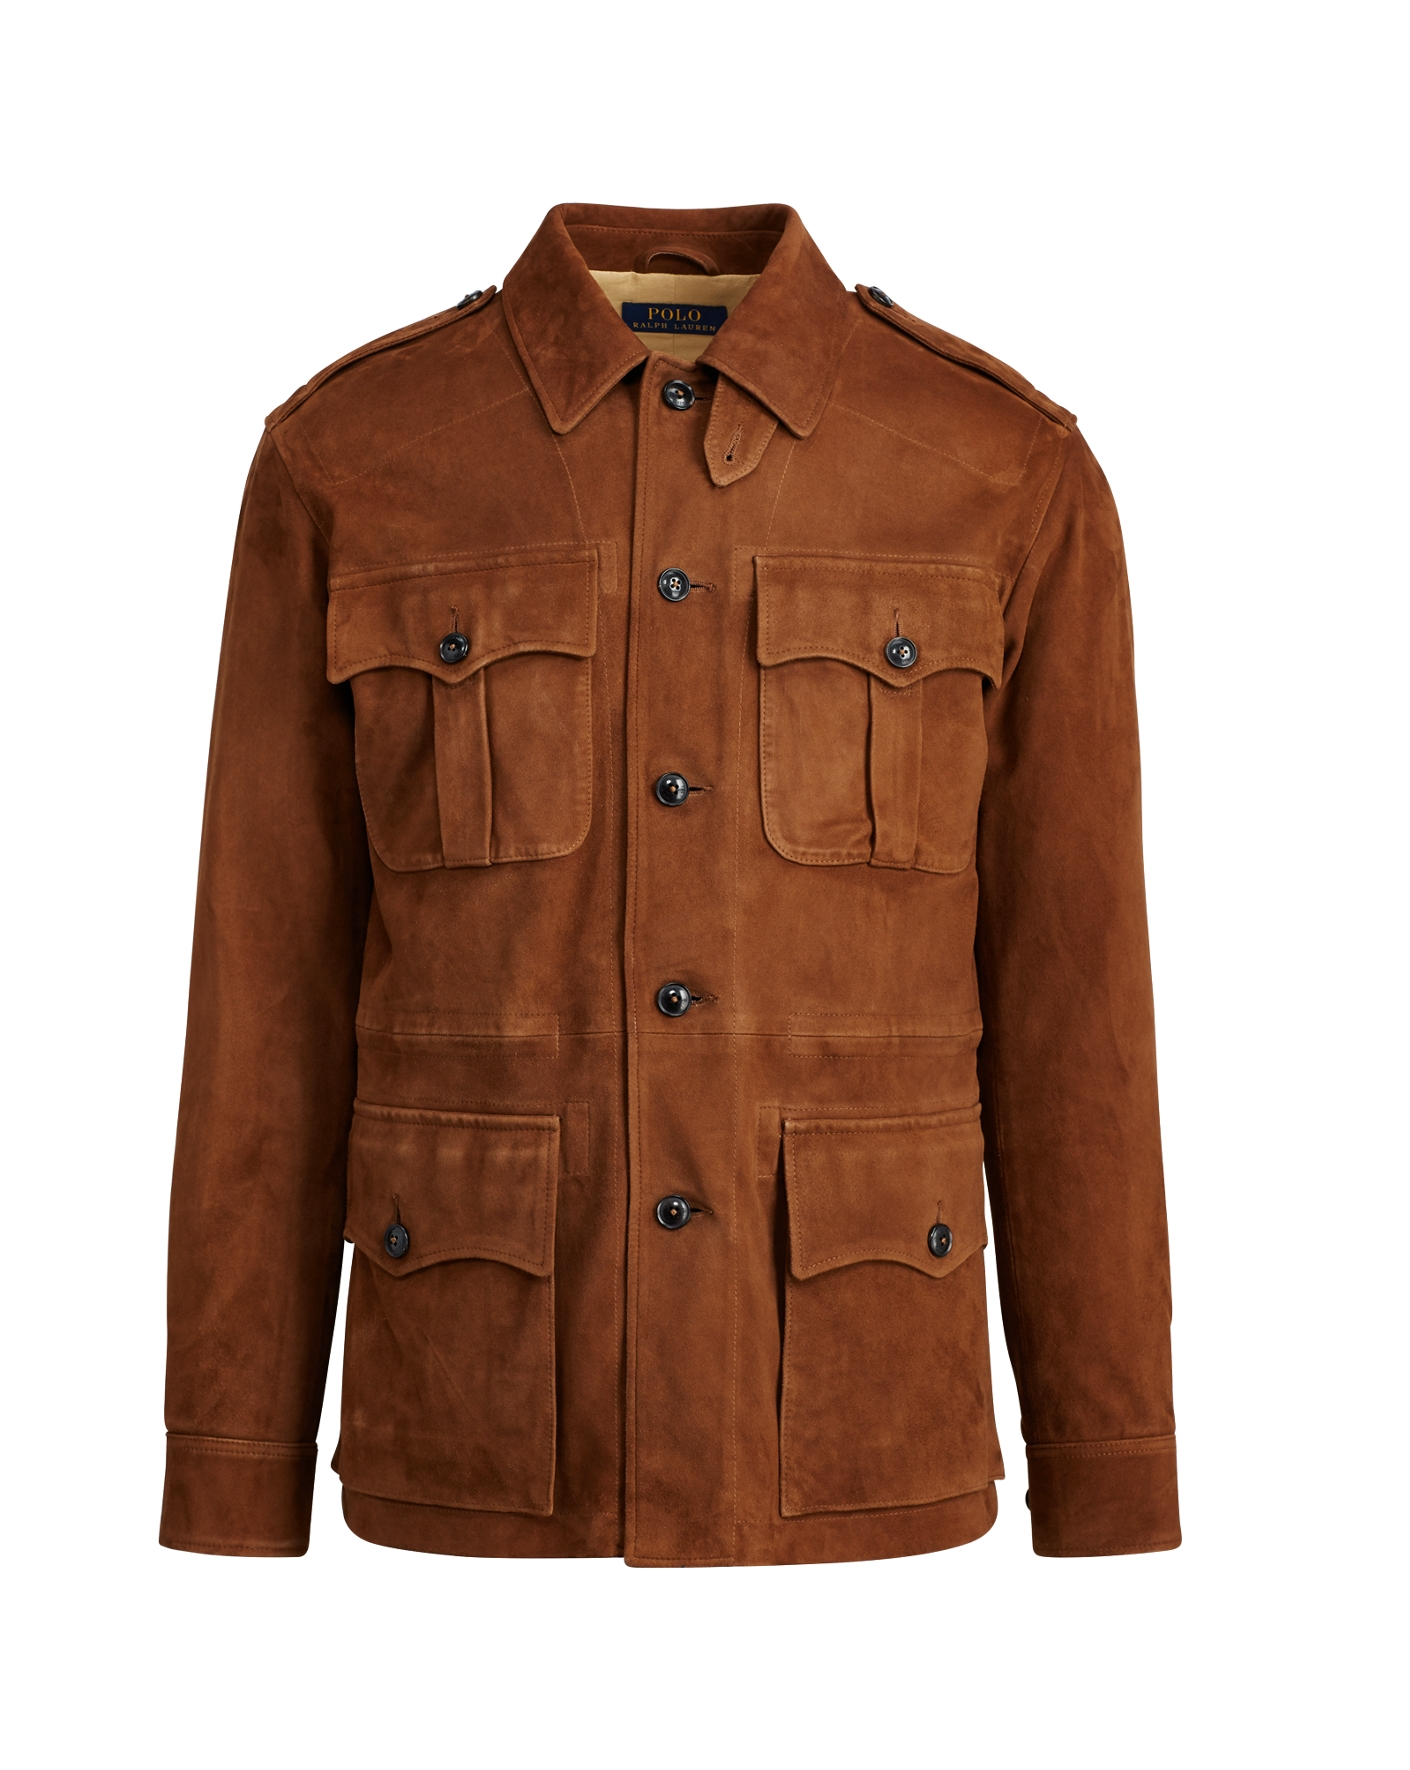 Men's Coats - Pea Coats, Trench Coats, Vests | Ralph Lauren